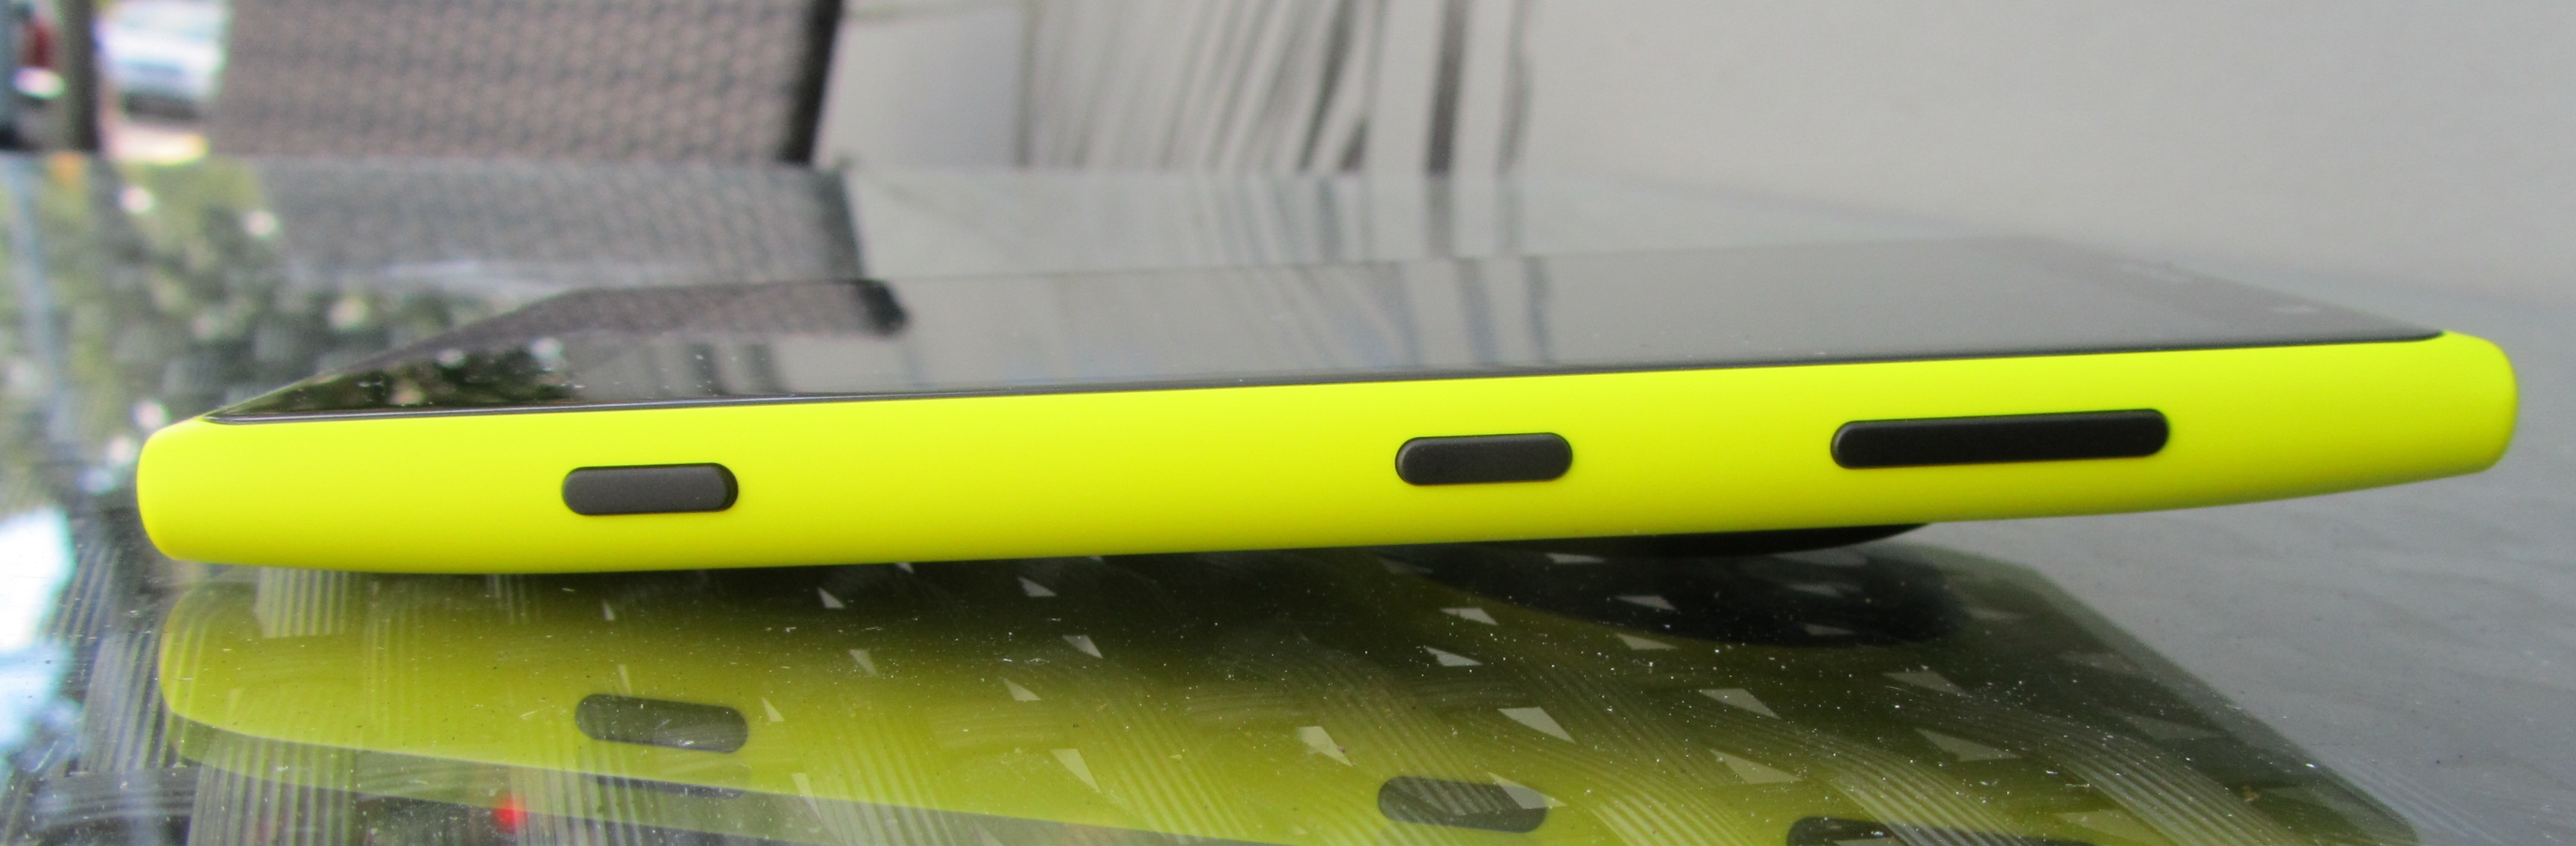 1020 on back Nokia Lumia 1020 review: The best camera phone, but not the best smartphone